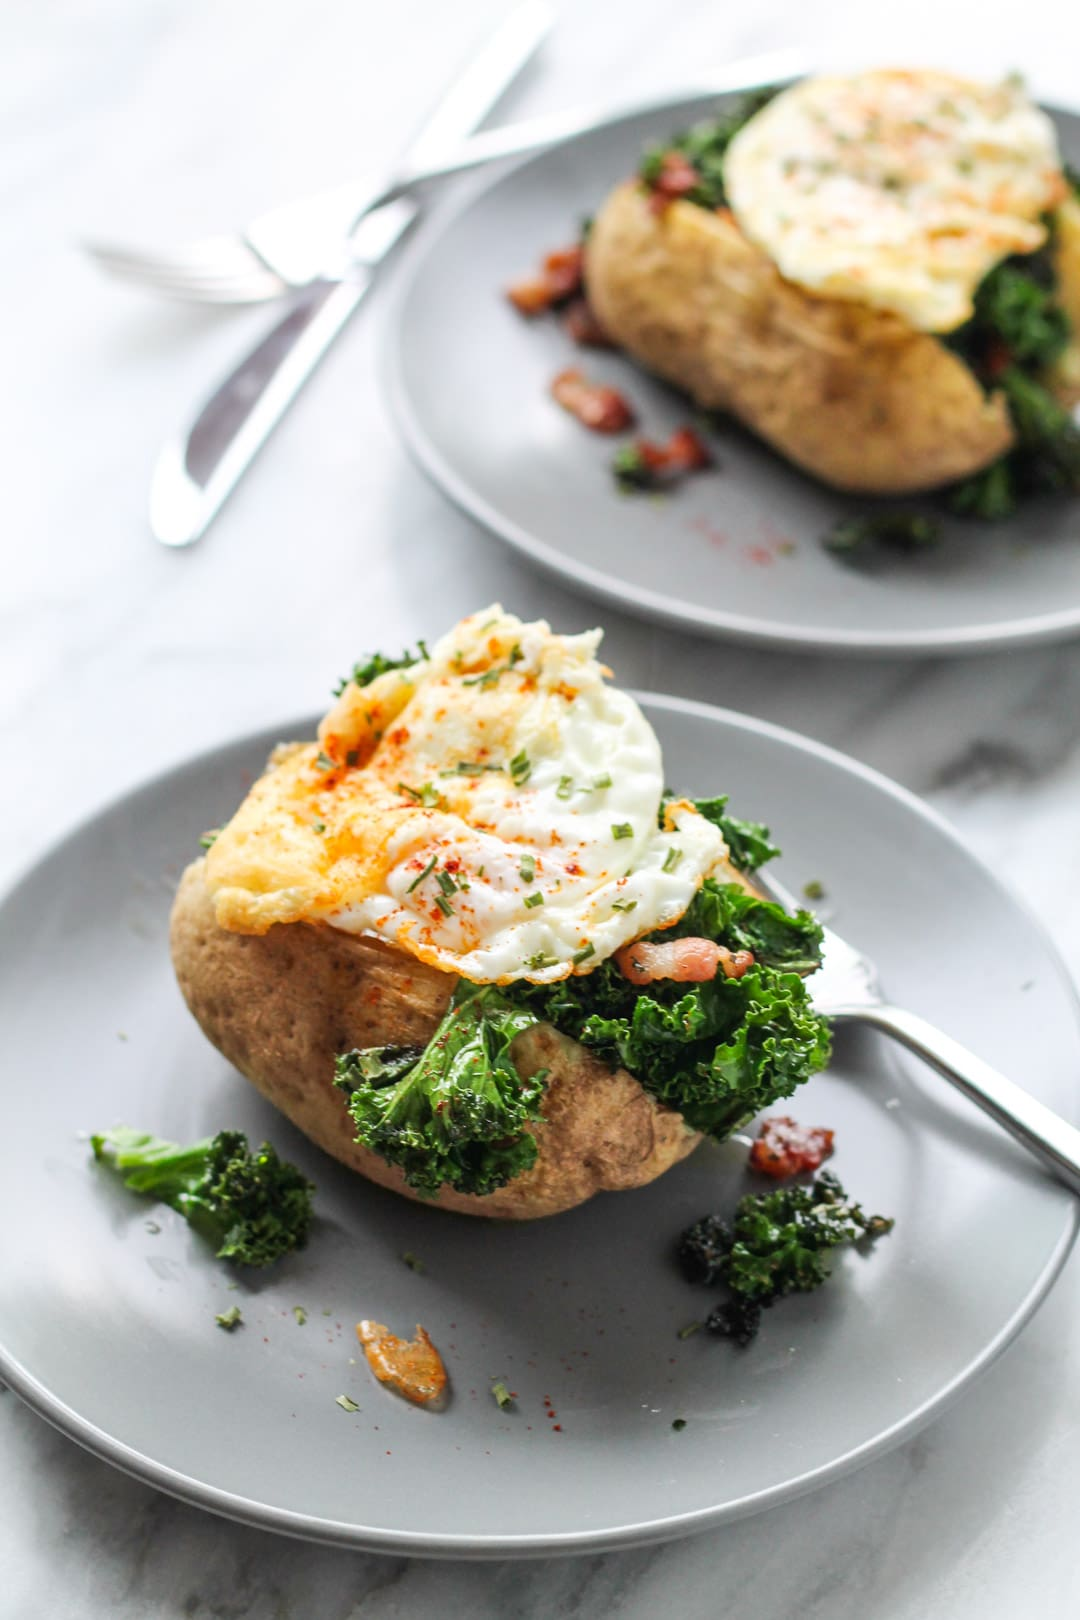 Two plates baked potatoes stuffed with bacon and kale and topped with a fried egg and a sprinkle of chives and paprika.